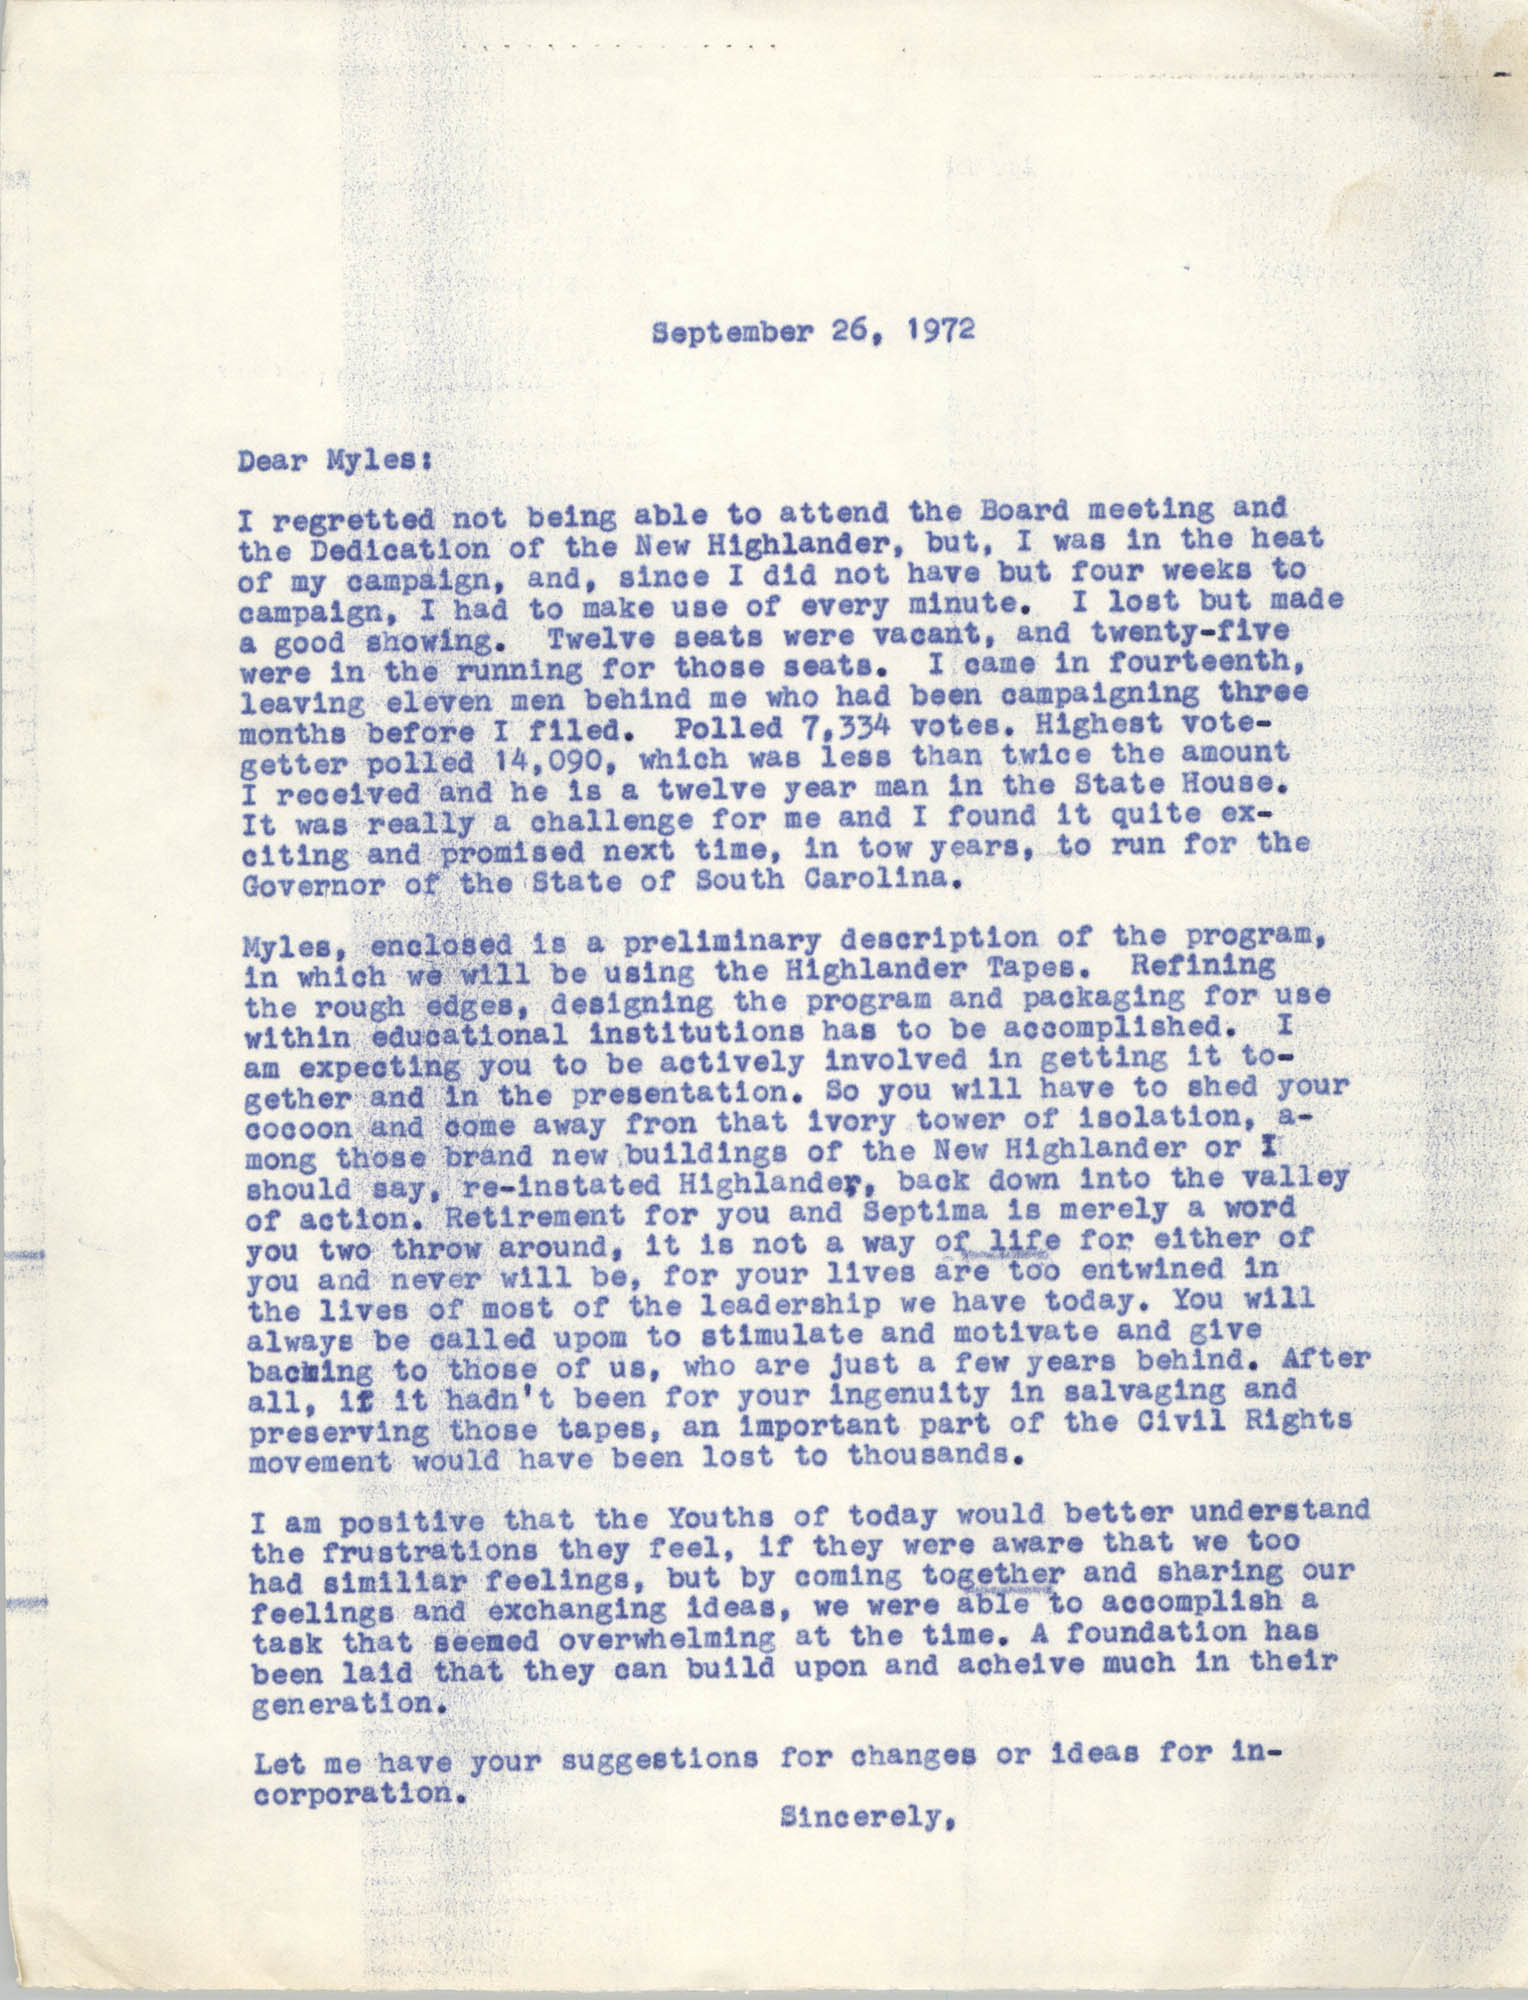 Letter from Bernice Robinson to Myles Horton, September 26, 1972